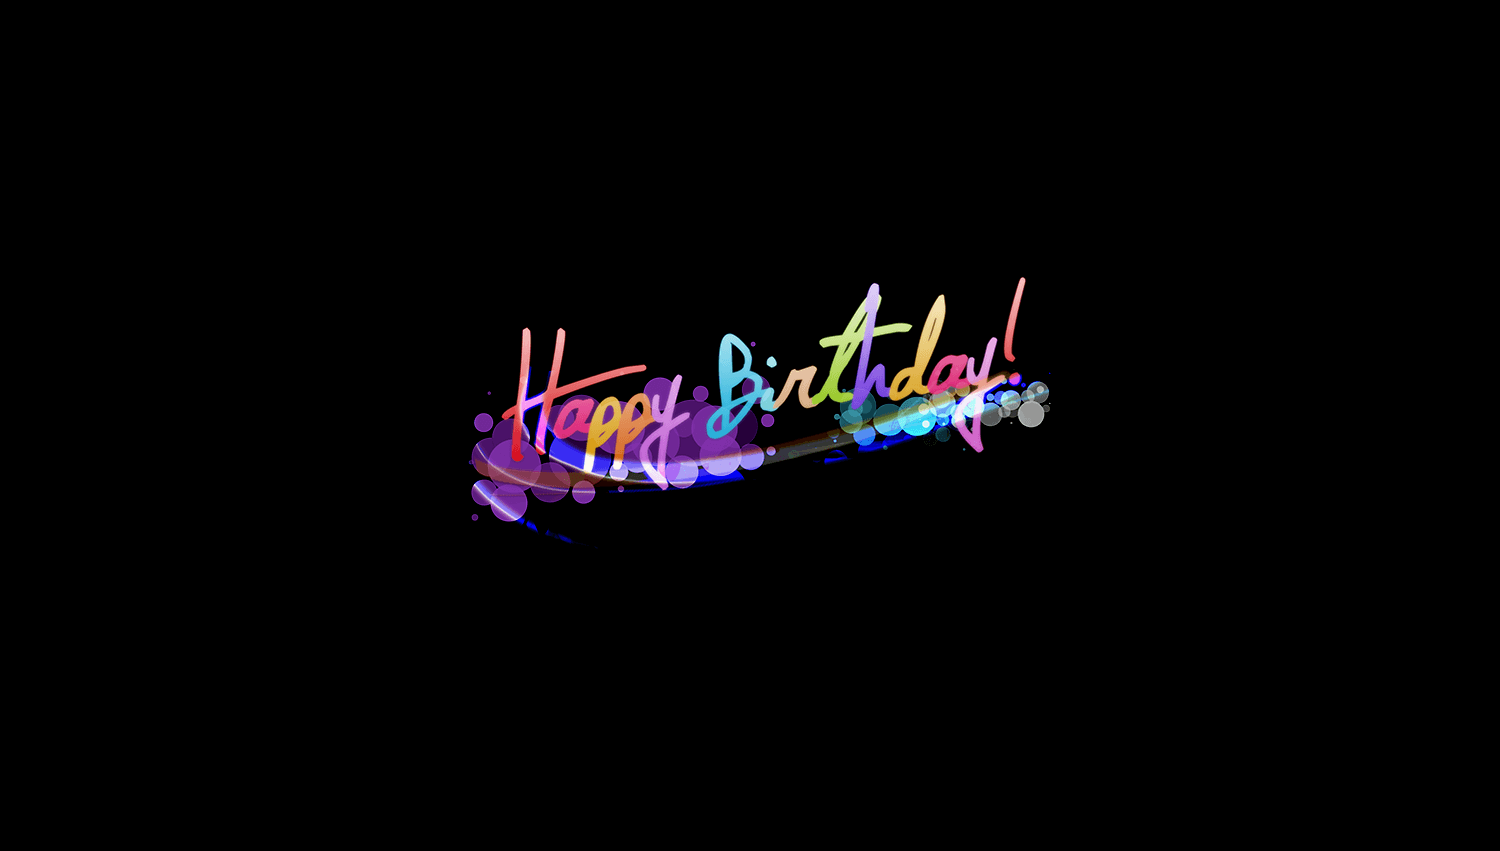 Happy Birthday Wallpapers | Free HD Desktop Wallpaper | Viewhdwall.